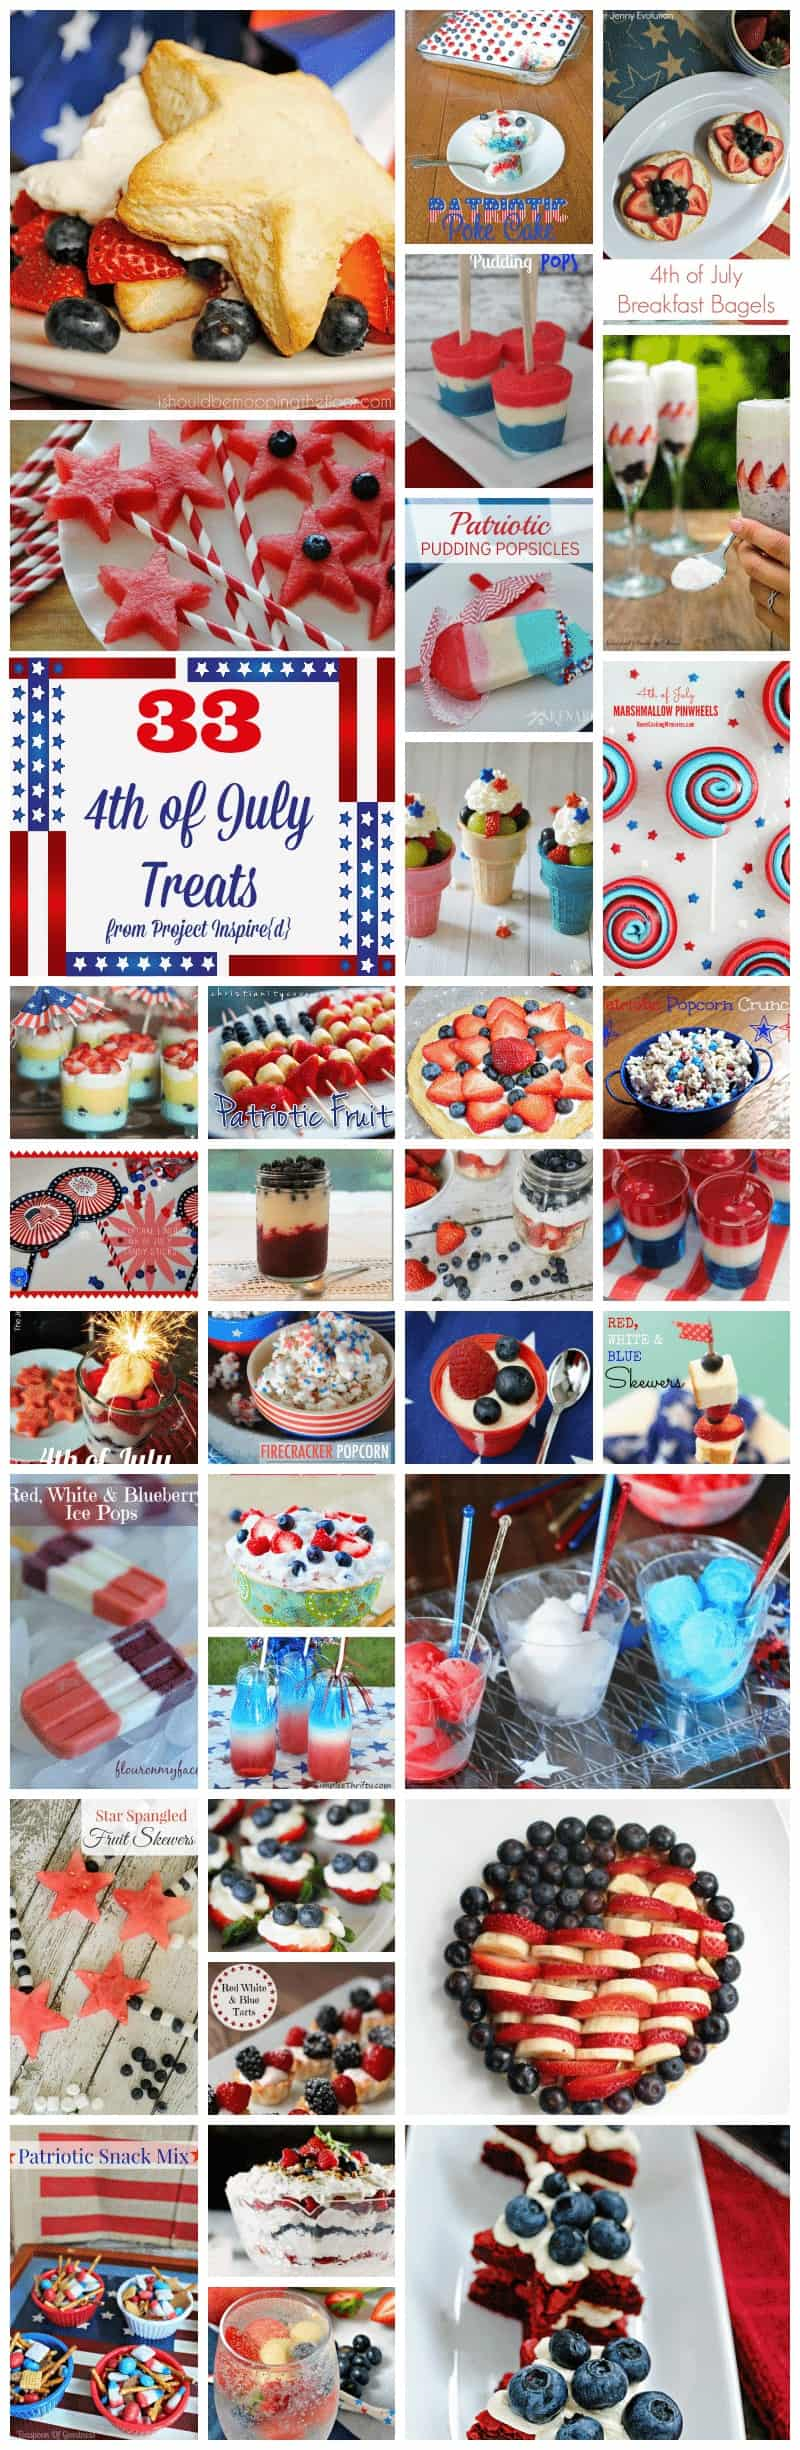 33 4th of July Treats from Project Inspire{d} at cupcakesandcrinoline.com